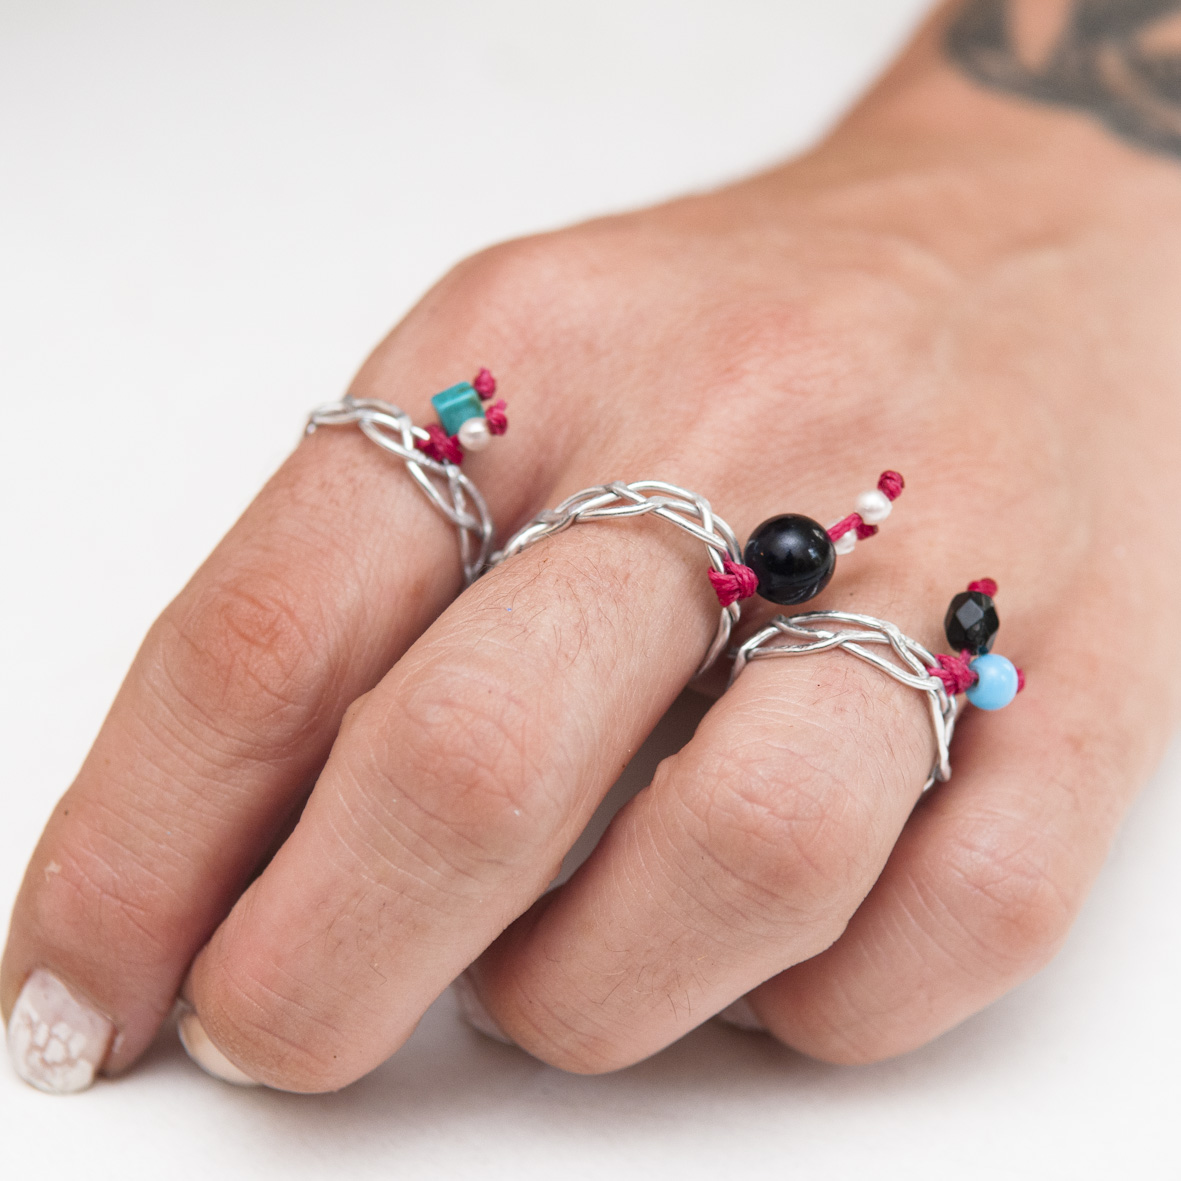 accessories_rings_wire_wake up cut_poppy anastouli_2213